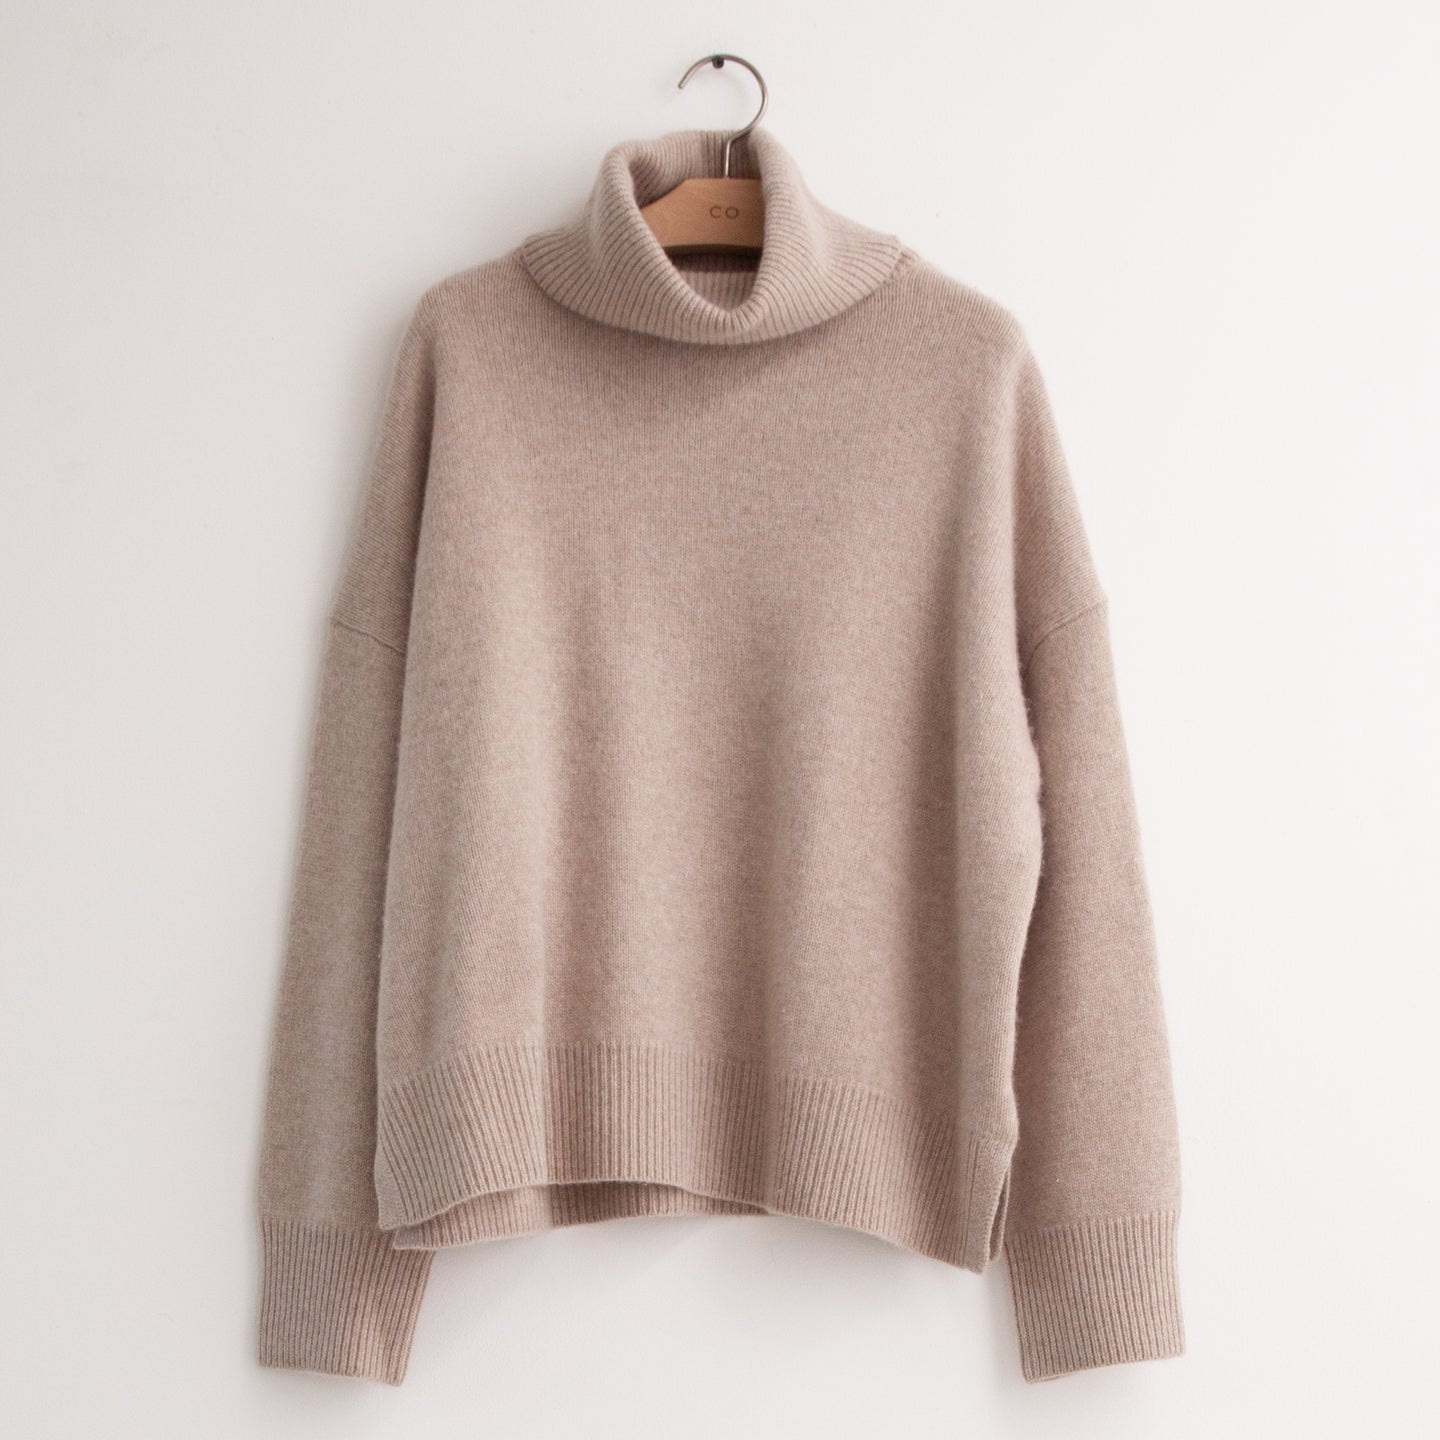 Drop shoulder turtleneck in taupe wool cashmere - CO